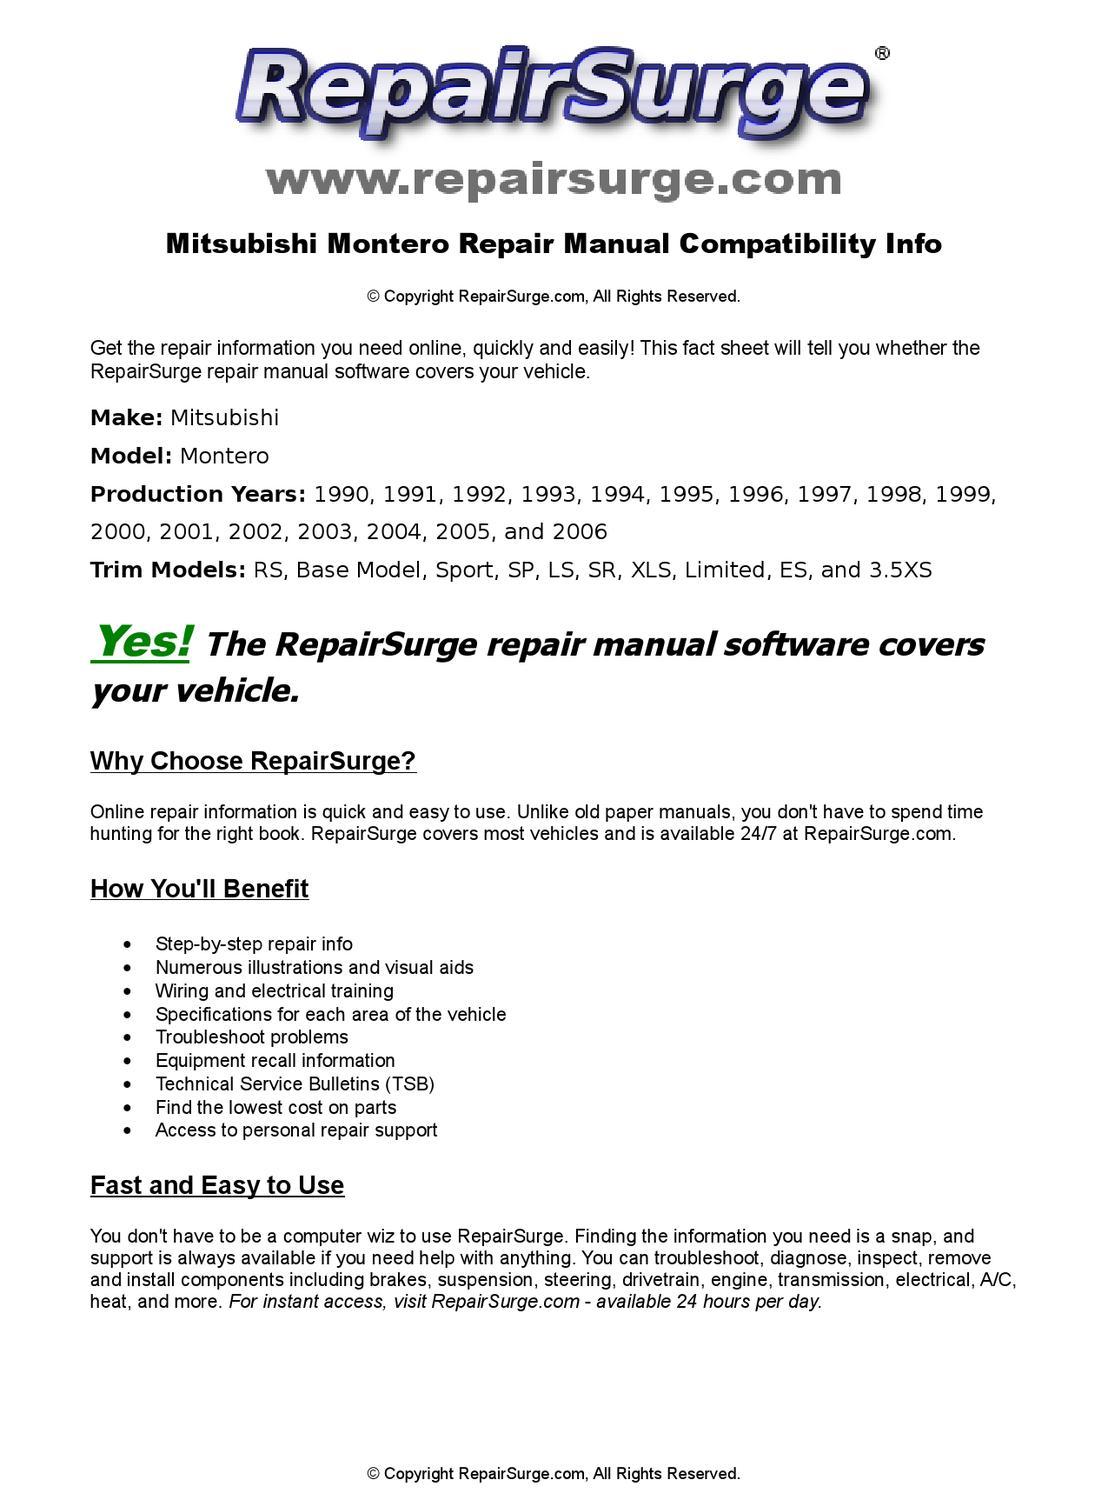 Mitsubishi Montero Online Repair Manual For 1990, 1991, 1992, 1993, 1994,  1995, 1996, 1997, 1998, 19 by RepairSurge - issuu